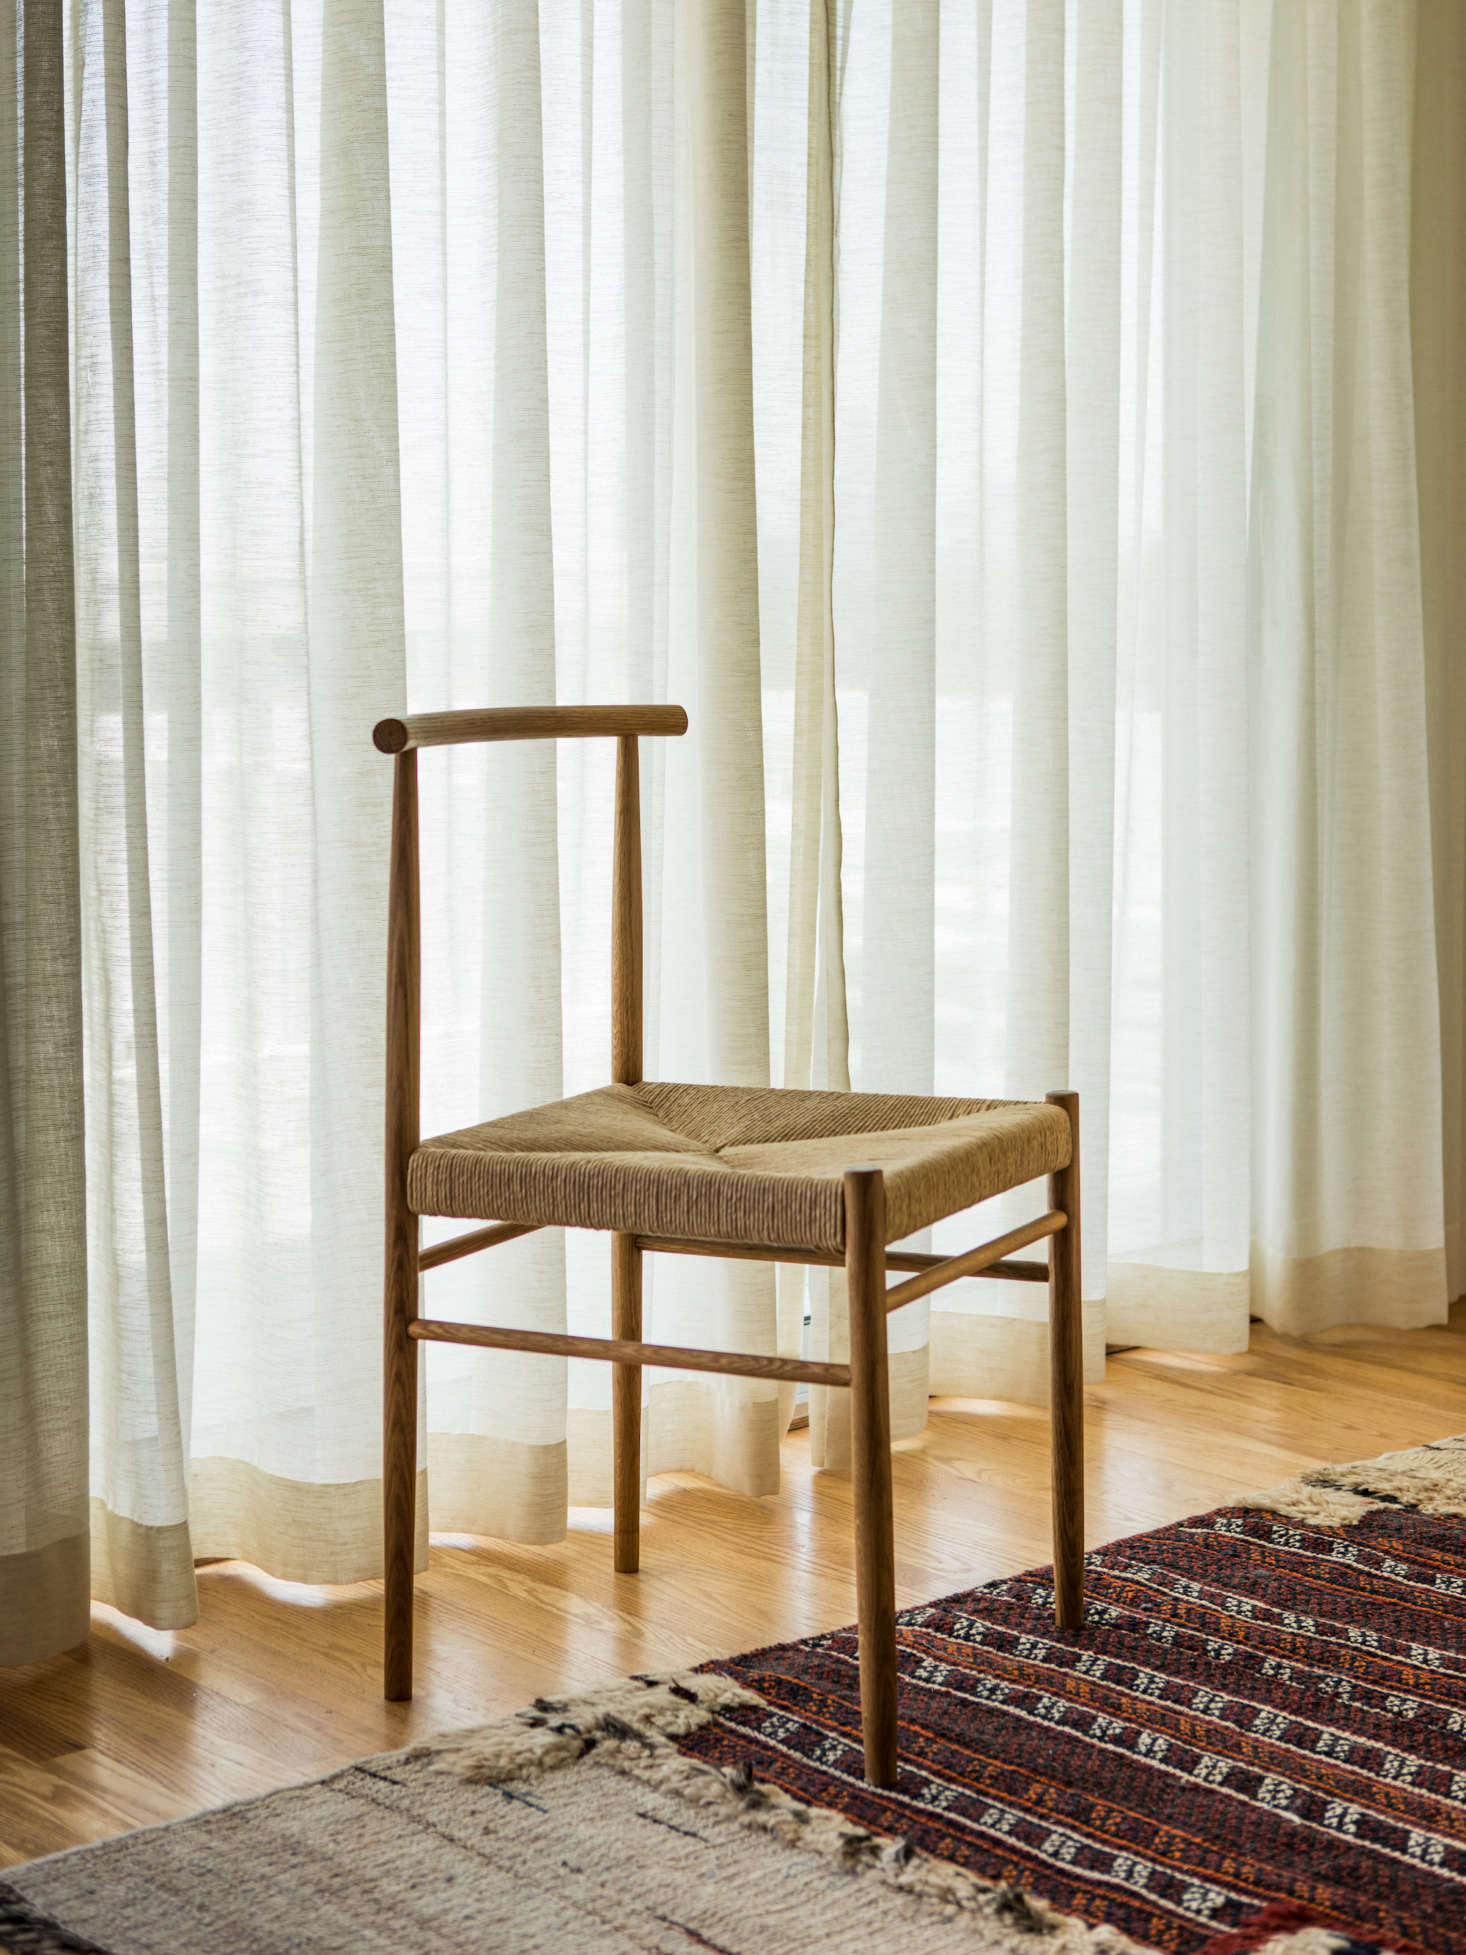 The 02 Chair by EB Joinery is made with traditional joinery and has a woven rush seat; $2,450.